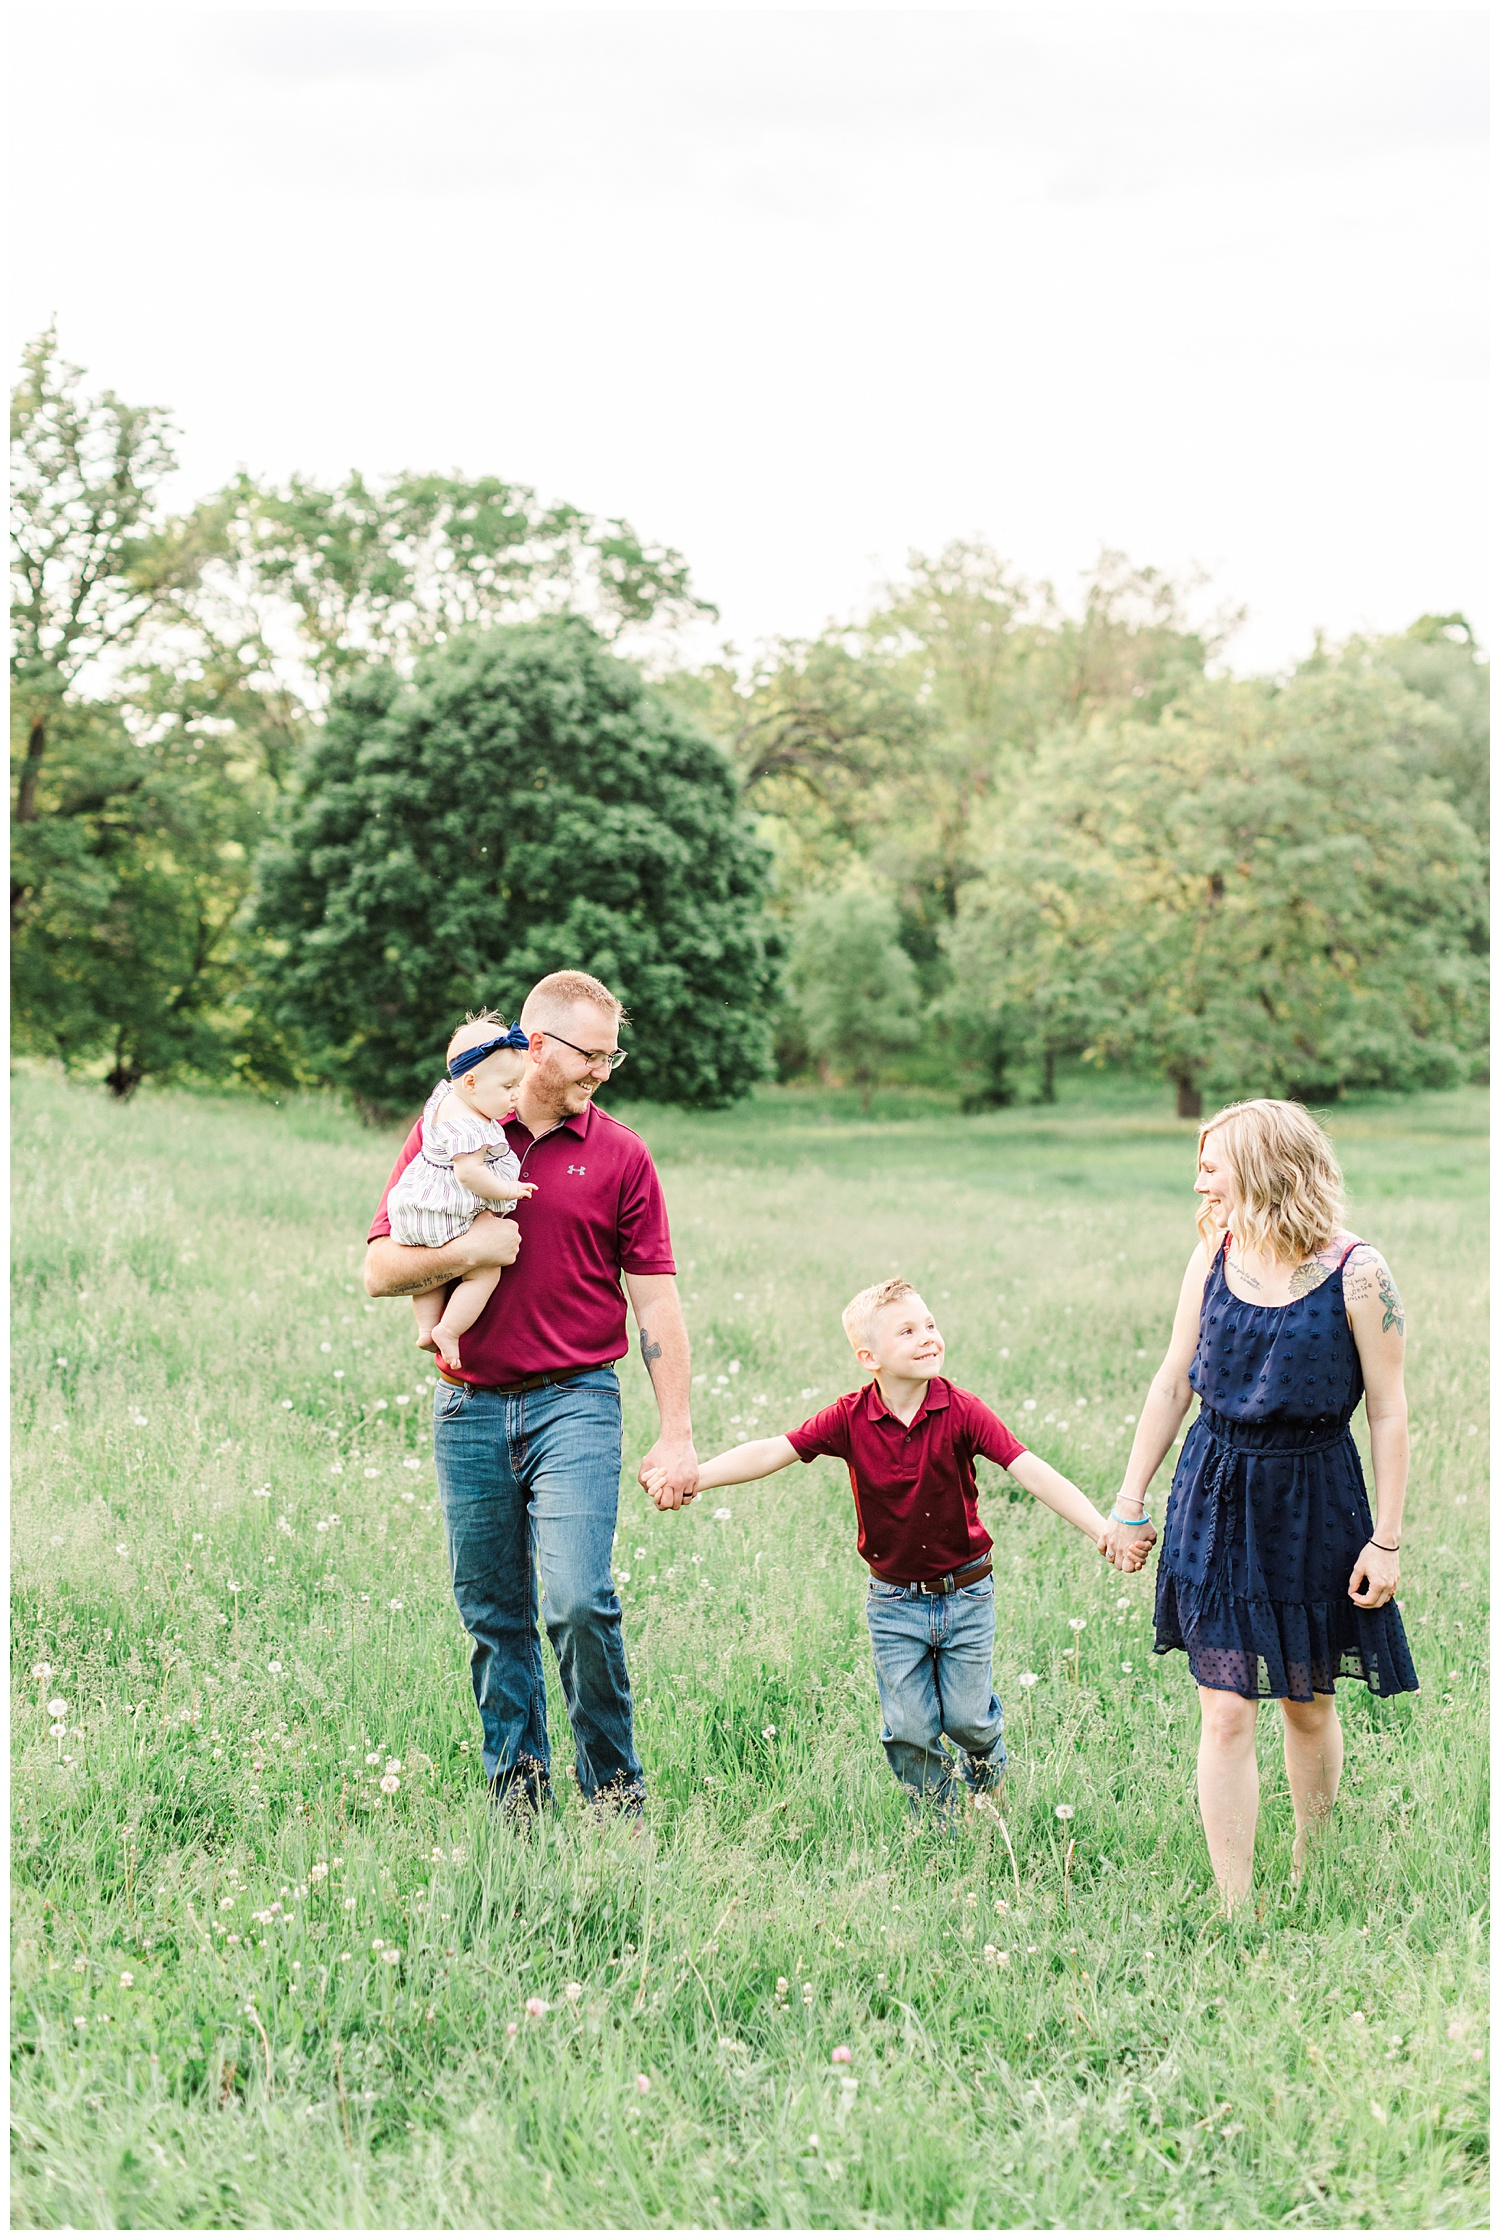 Family walks hand in hand in a grassy pasture with rolling hills in Iowa | CB Studio